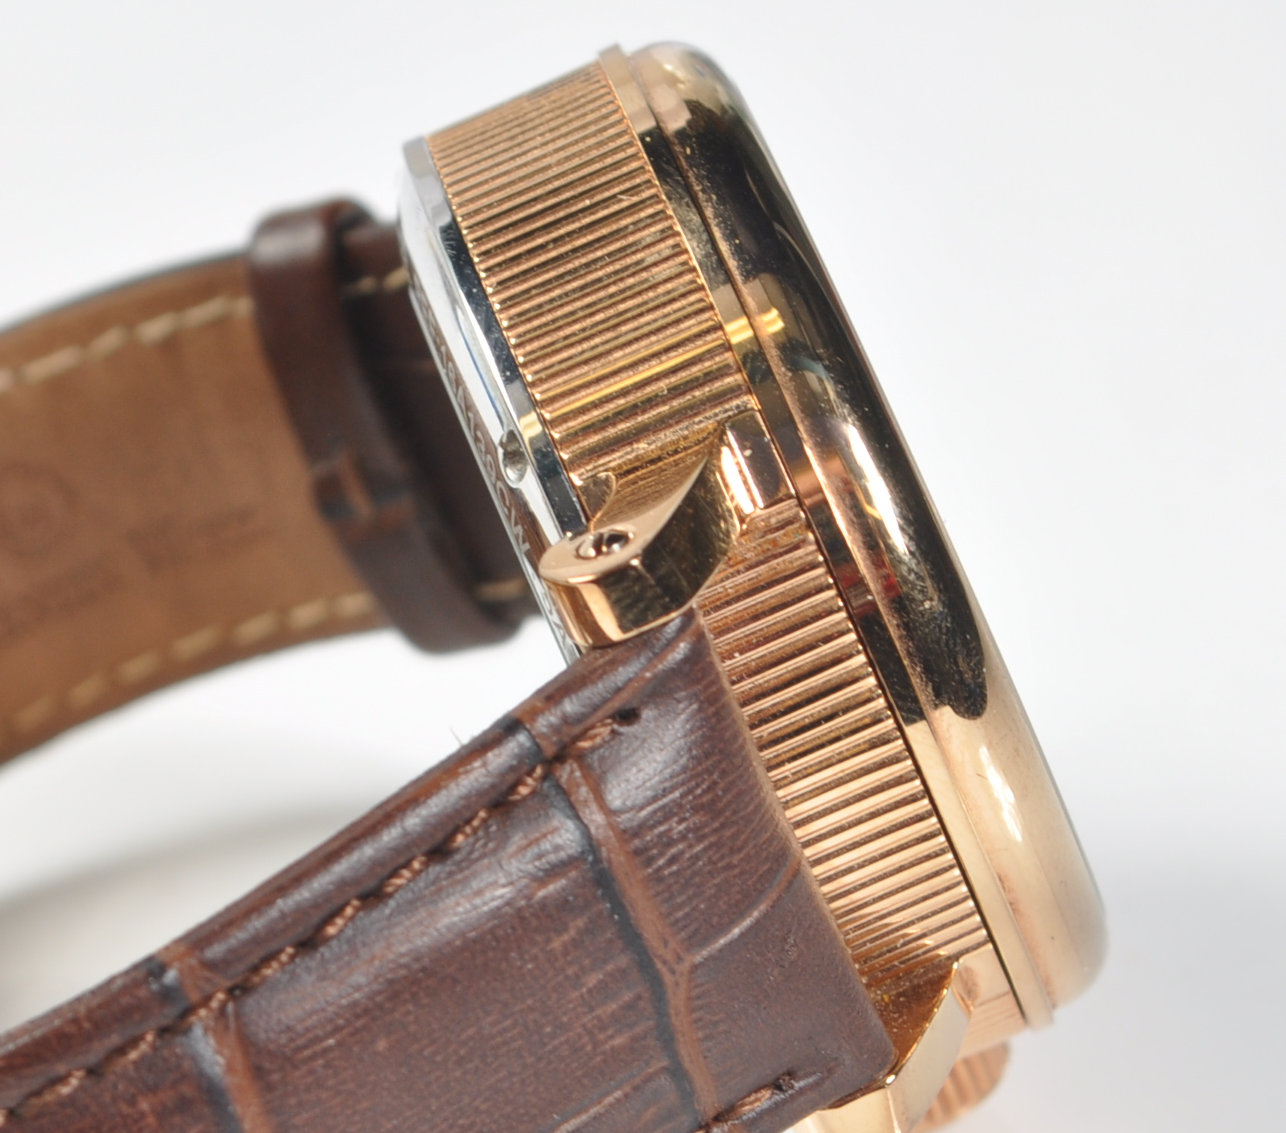 CONSTANTIN WEISZ DOUBLE HEART AUTOMATIC WRISTWATCH - Image 3 of 7